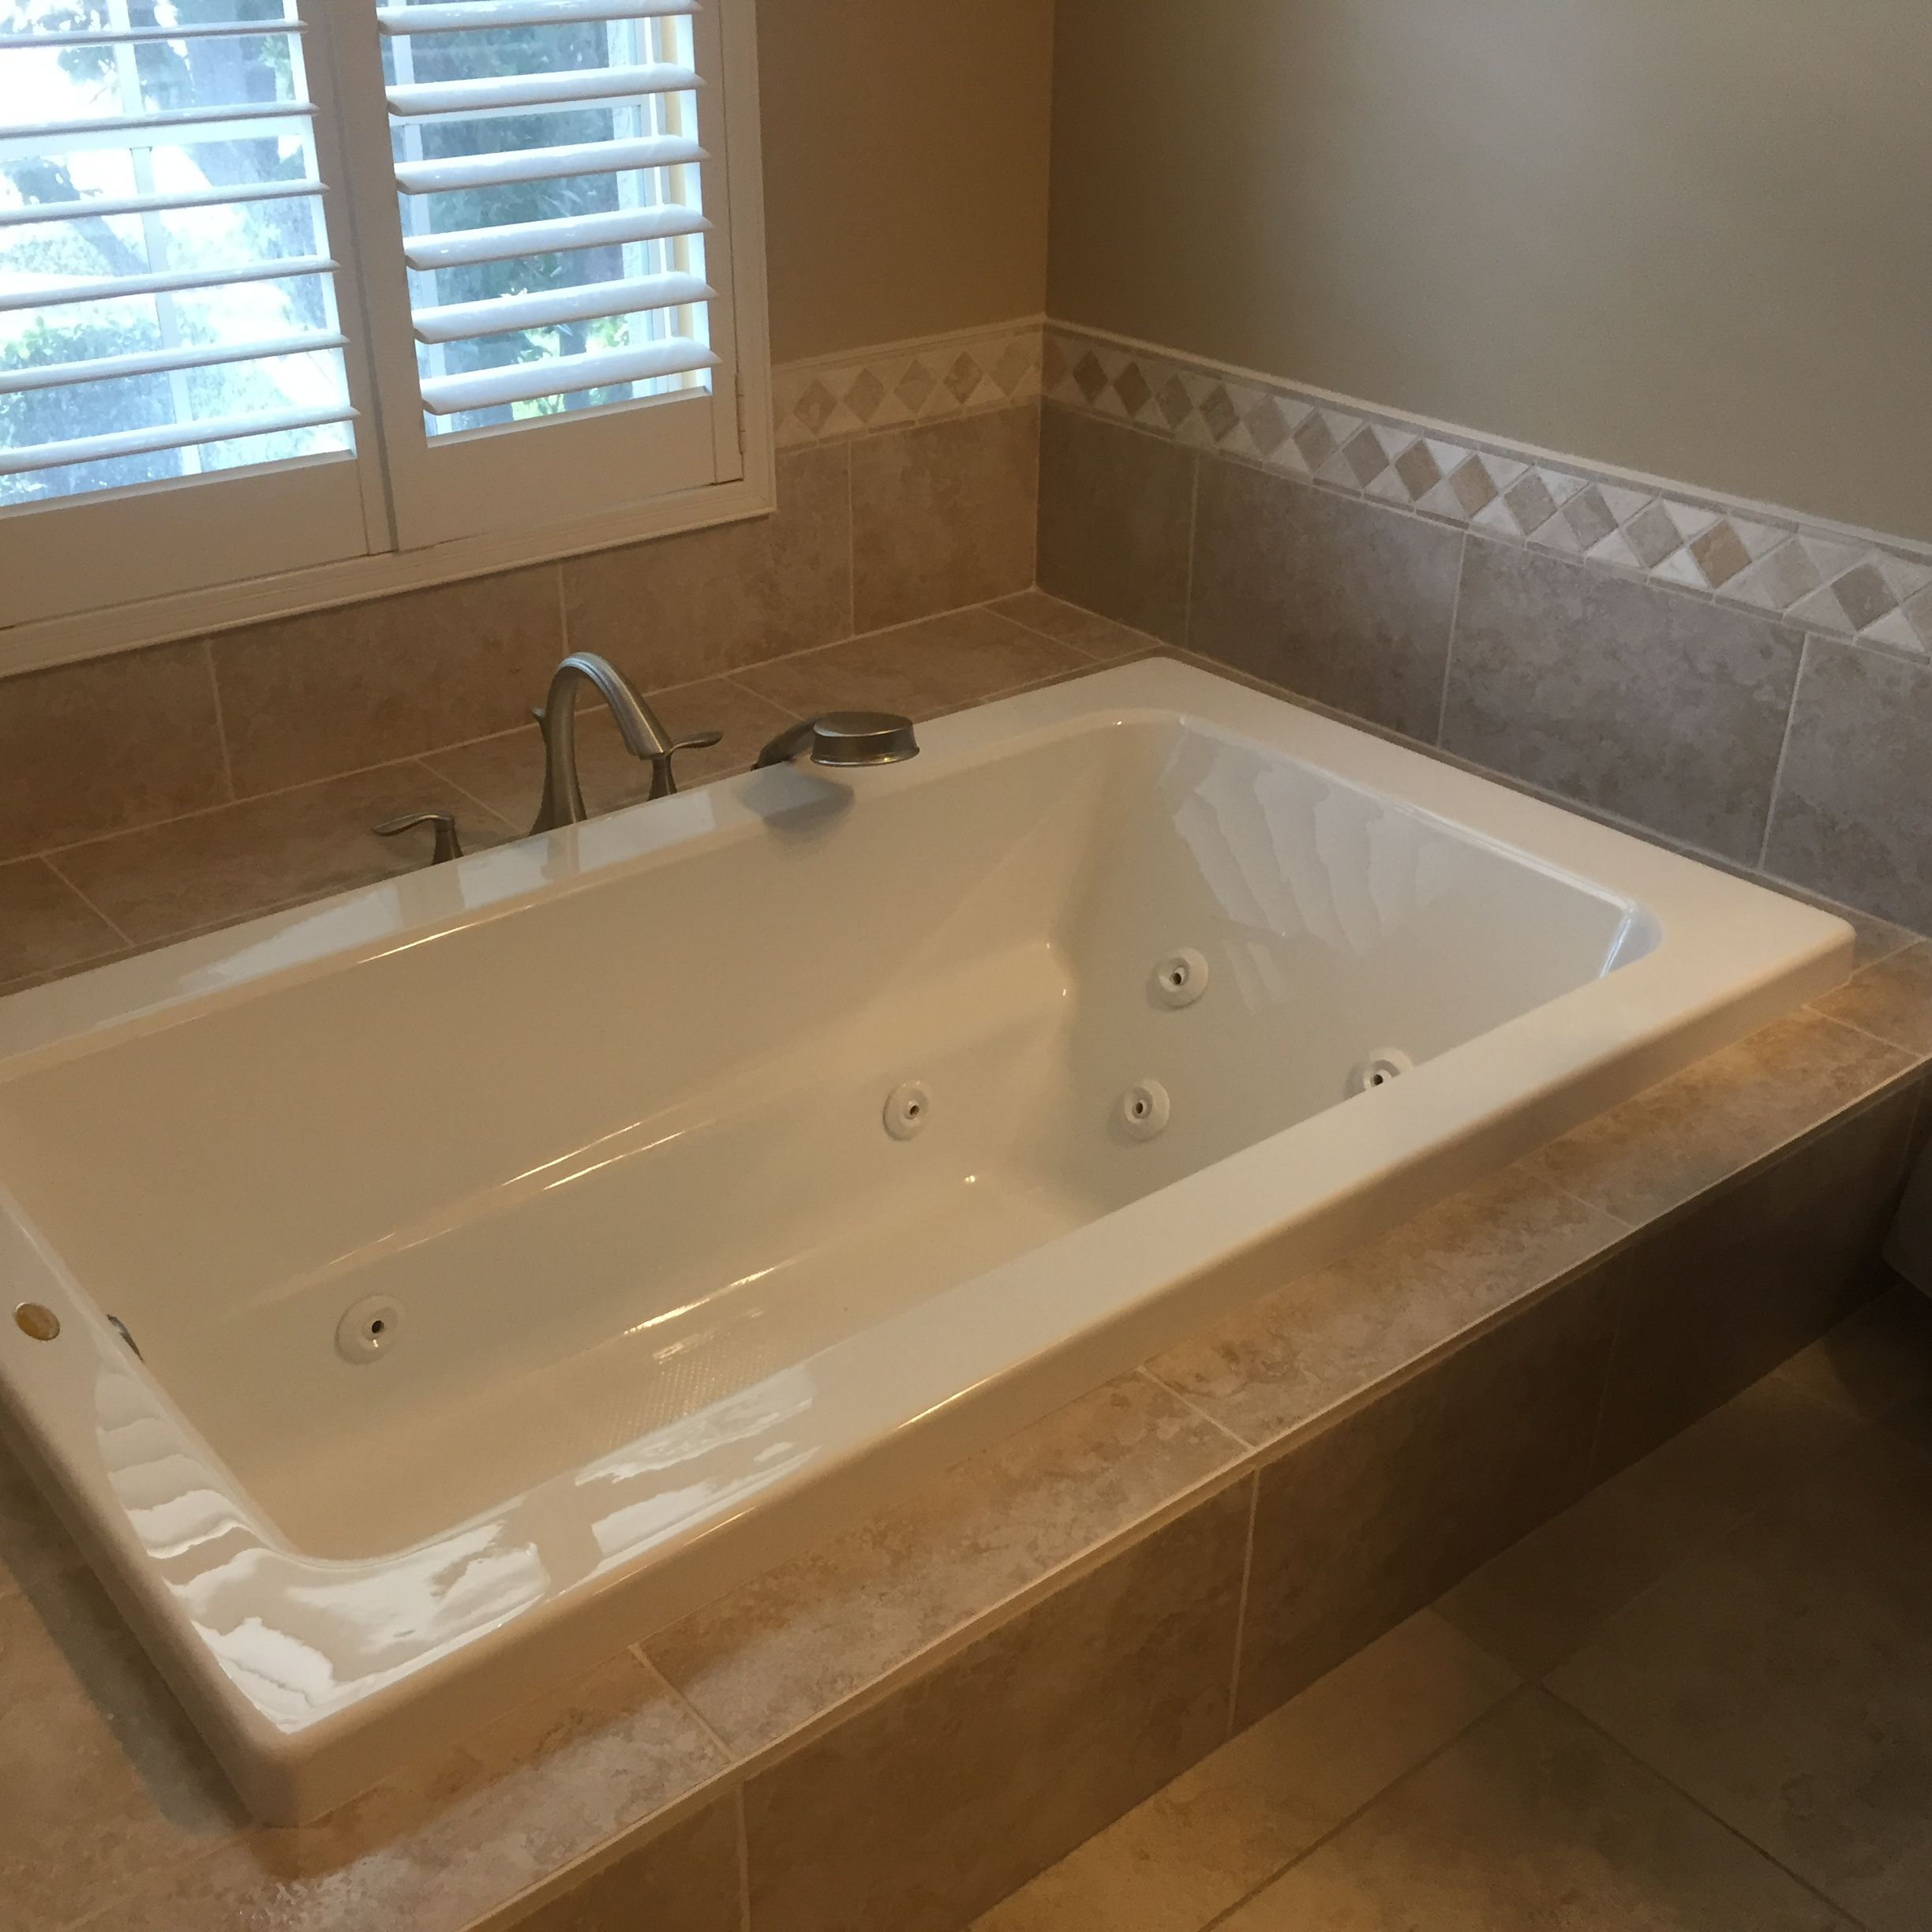 usa bathtubs jacuzzi whirlpool bathtub ti constar abaf jetted tub corner